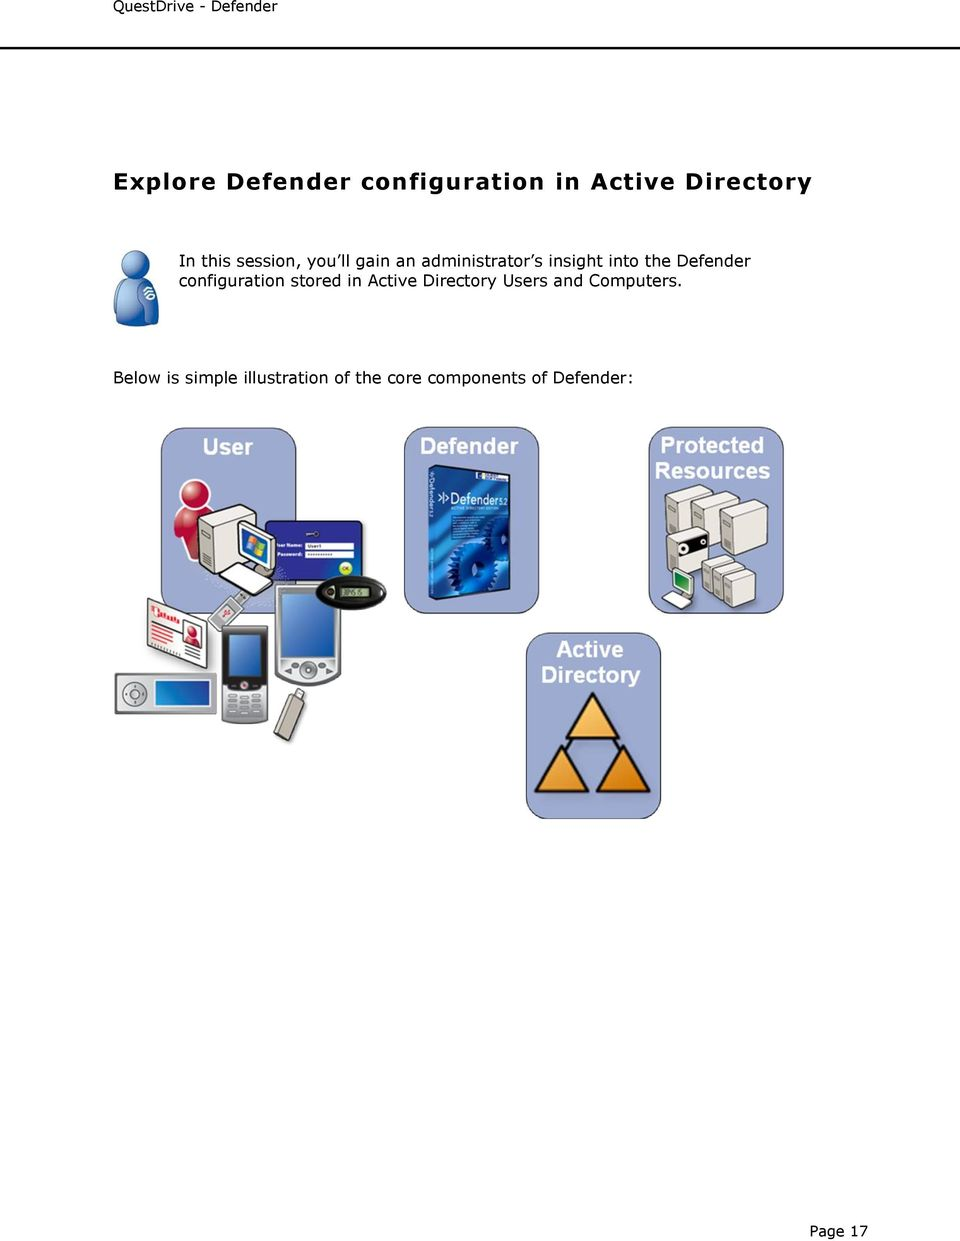 Defender configuration stored in Active Directory Users and